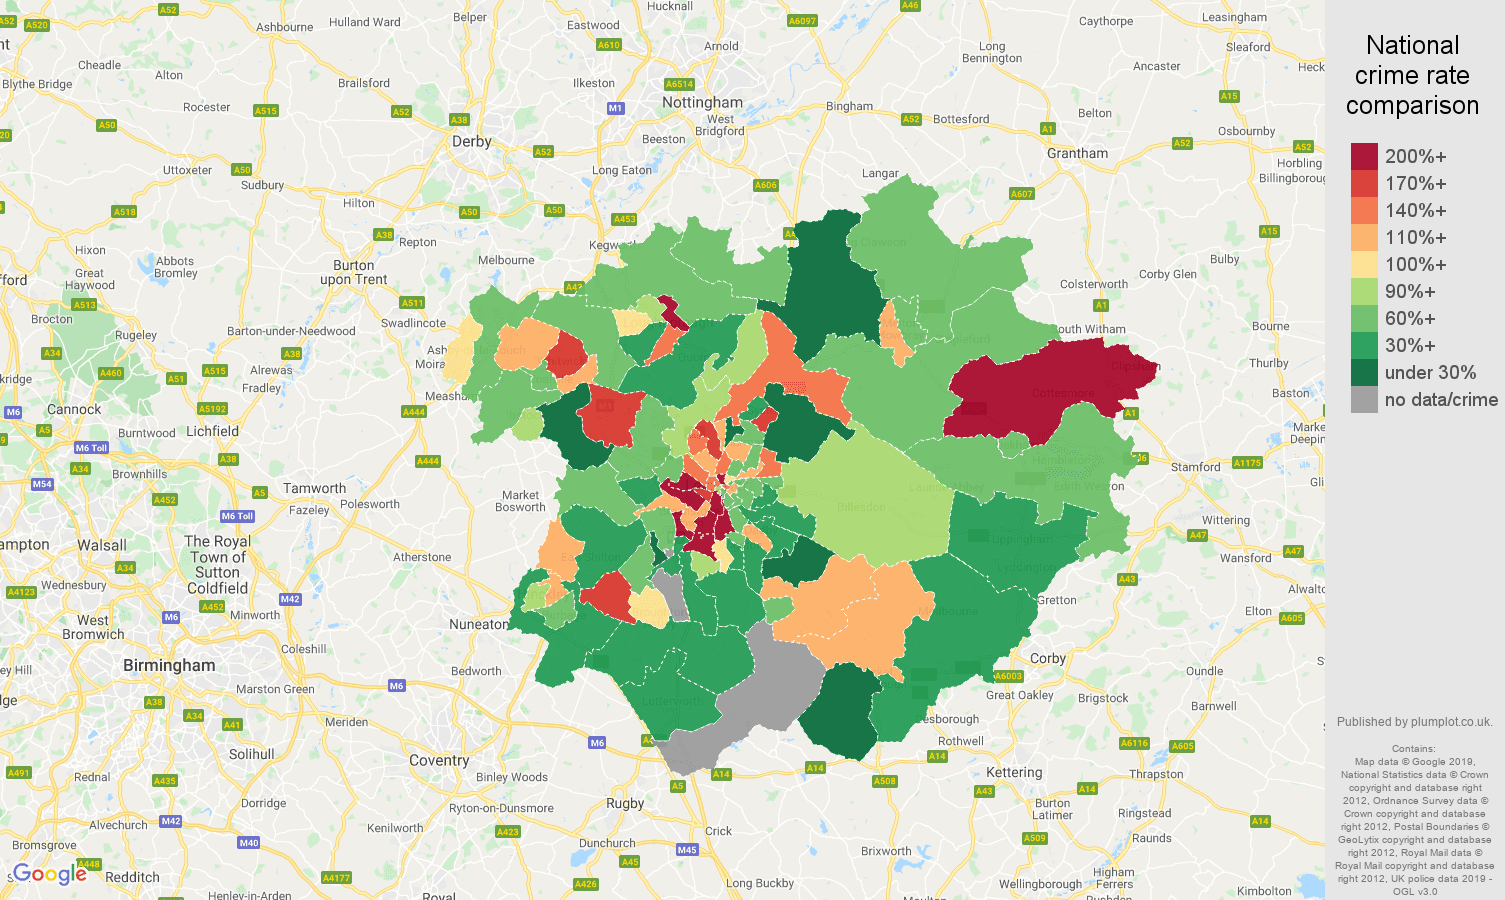 Leicester other crime rate comparison map